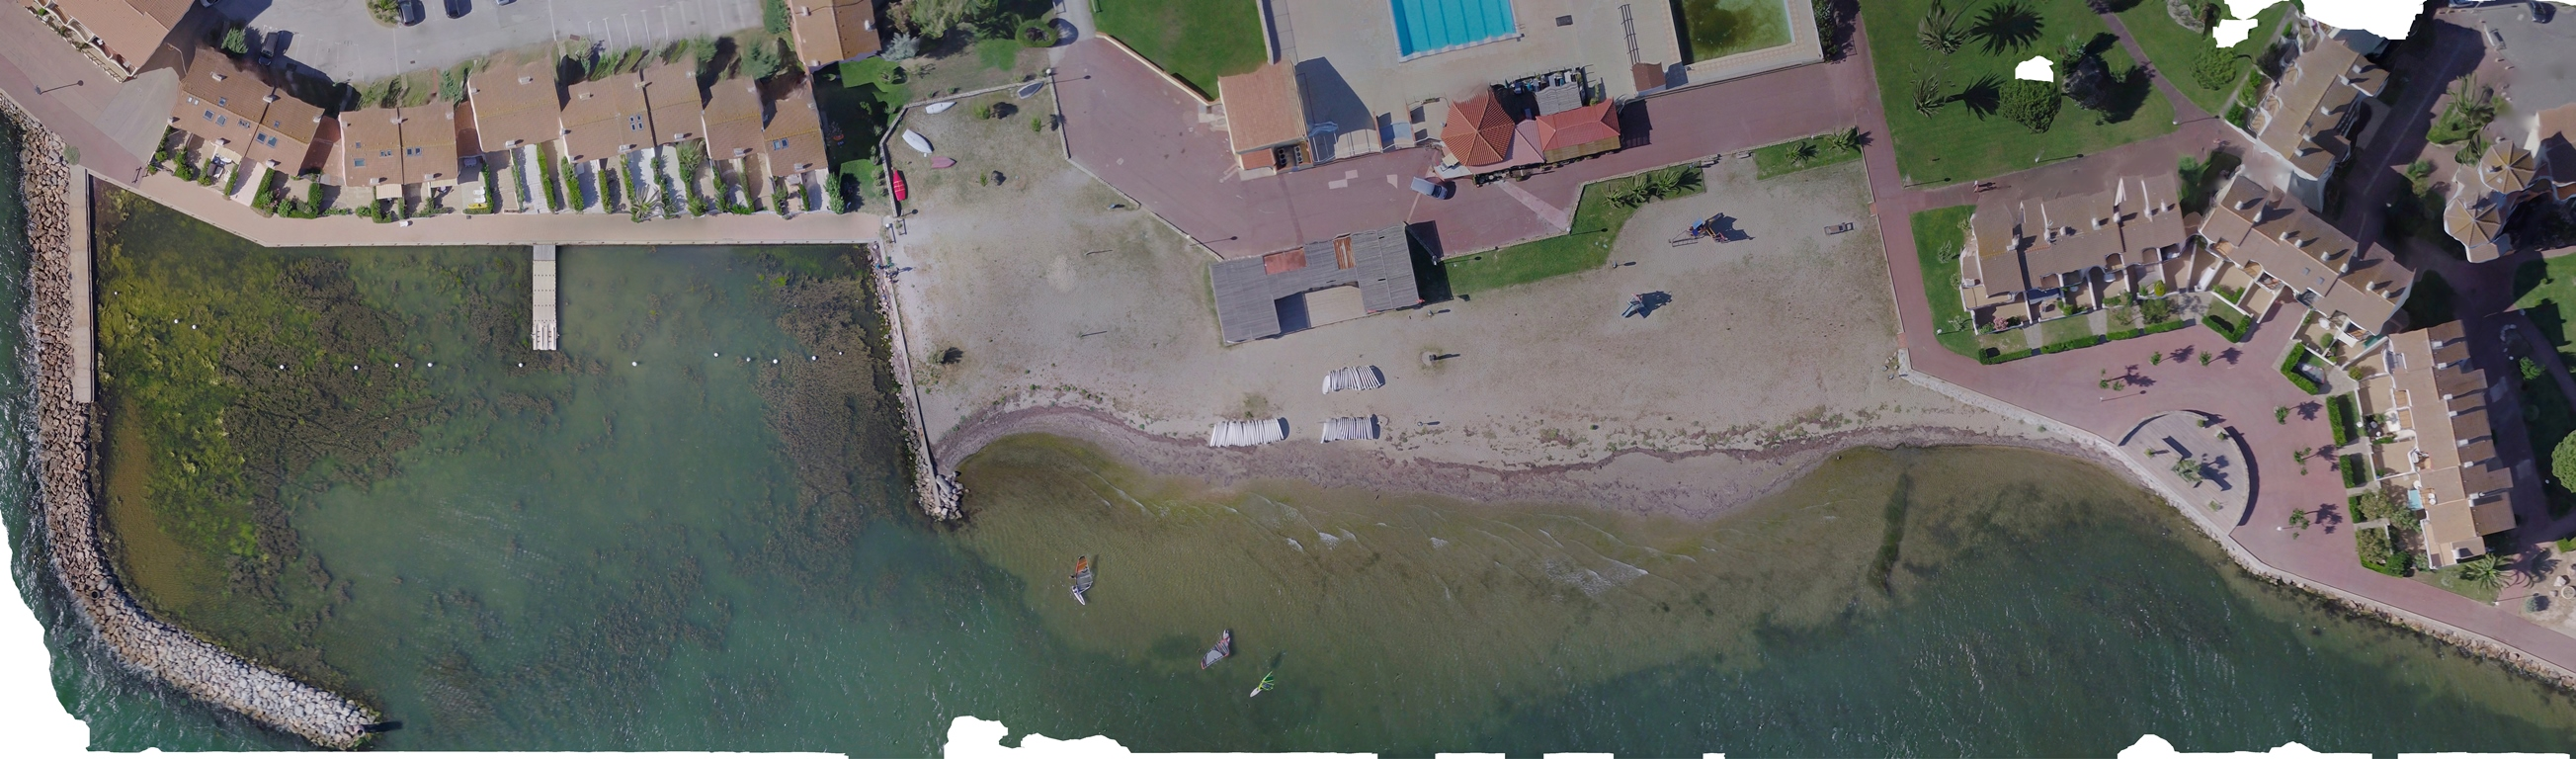 The orthophotoplan created with the photos of the drone is used to measure with great precision this particular seagrass in the Étang de Leucate © Octopus Foundation